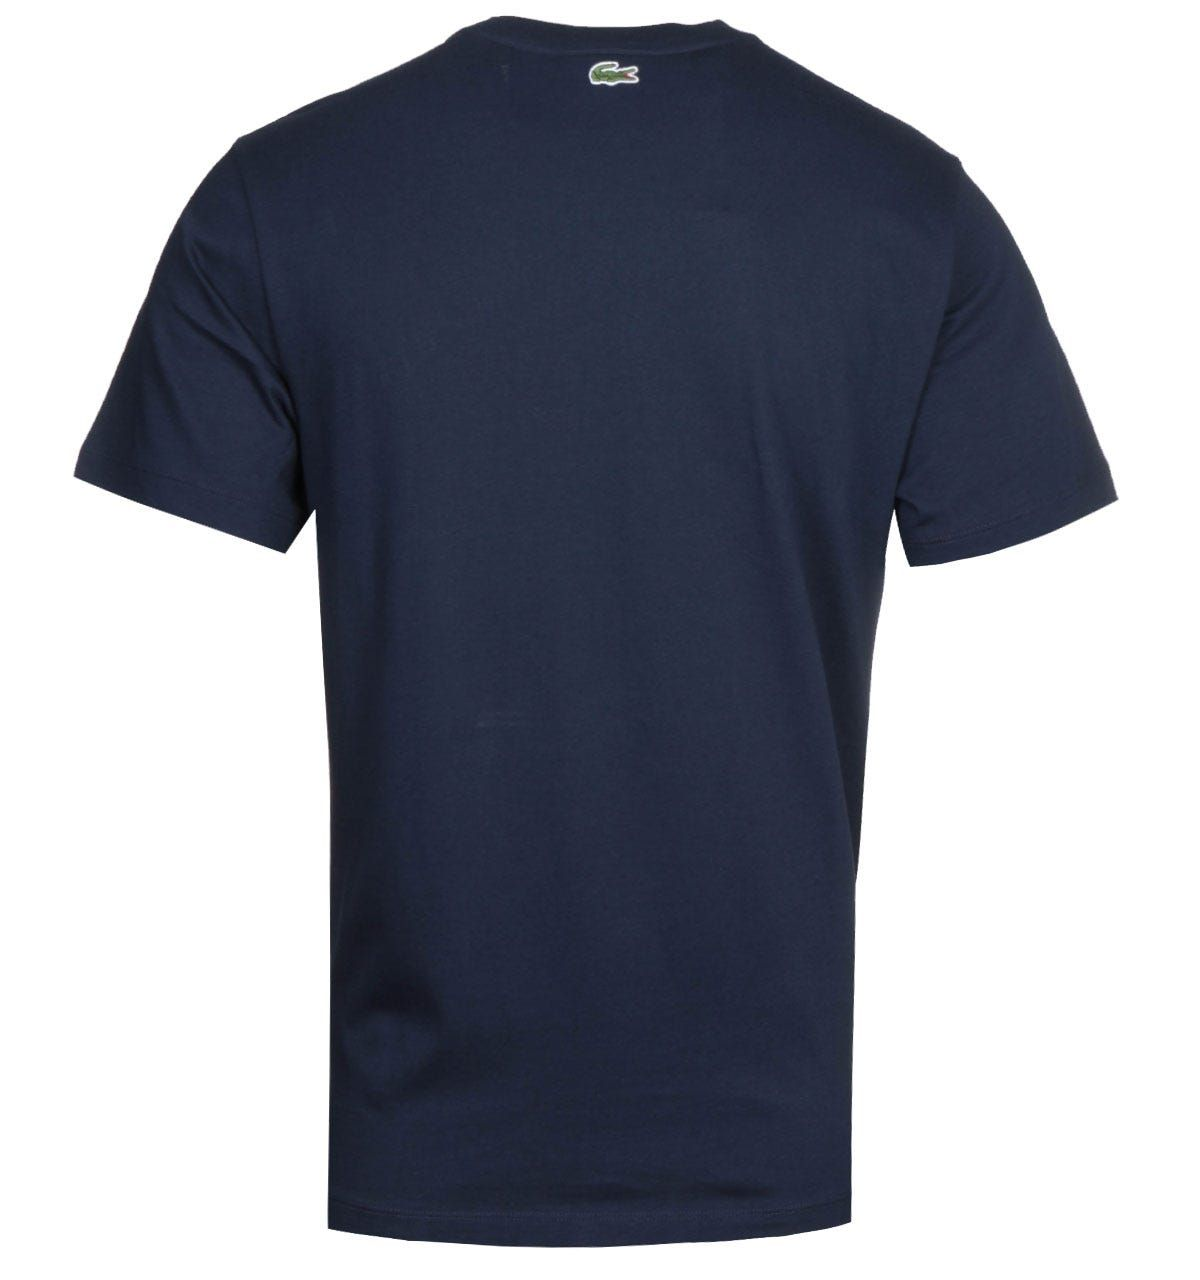 Lacoste Homme Navy Logo T-Shirt